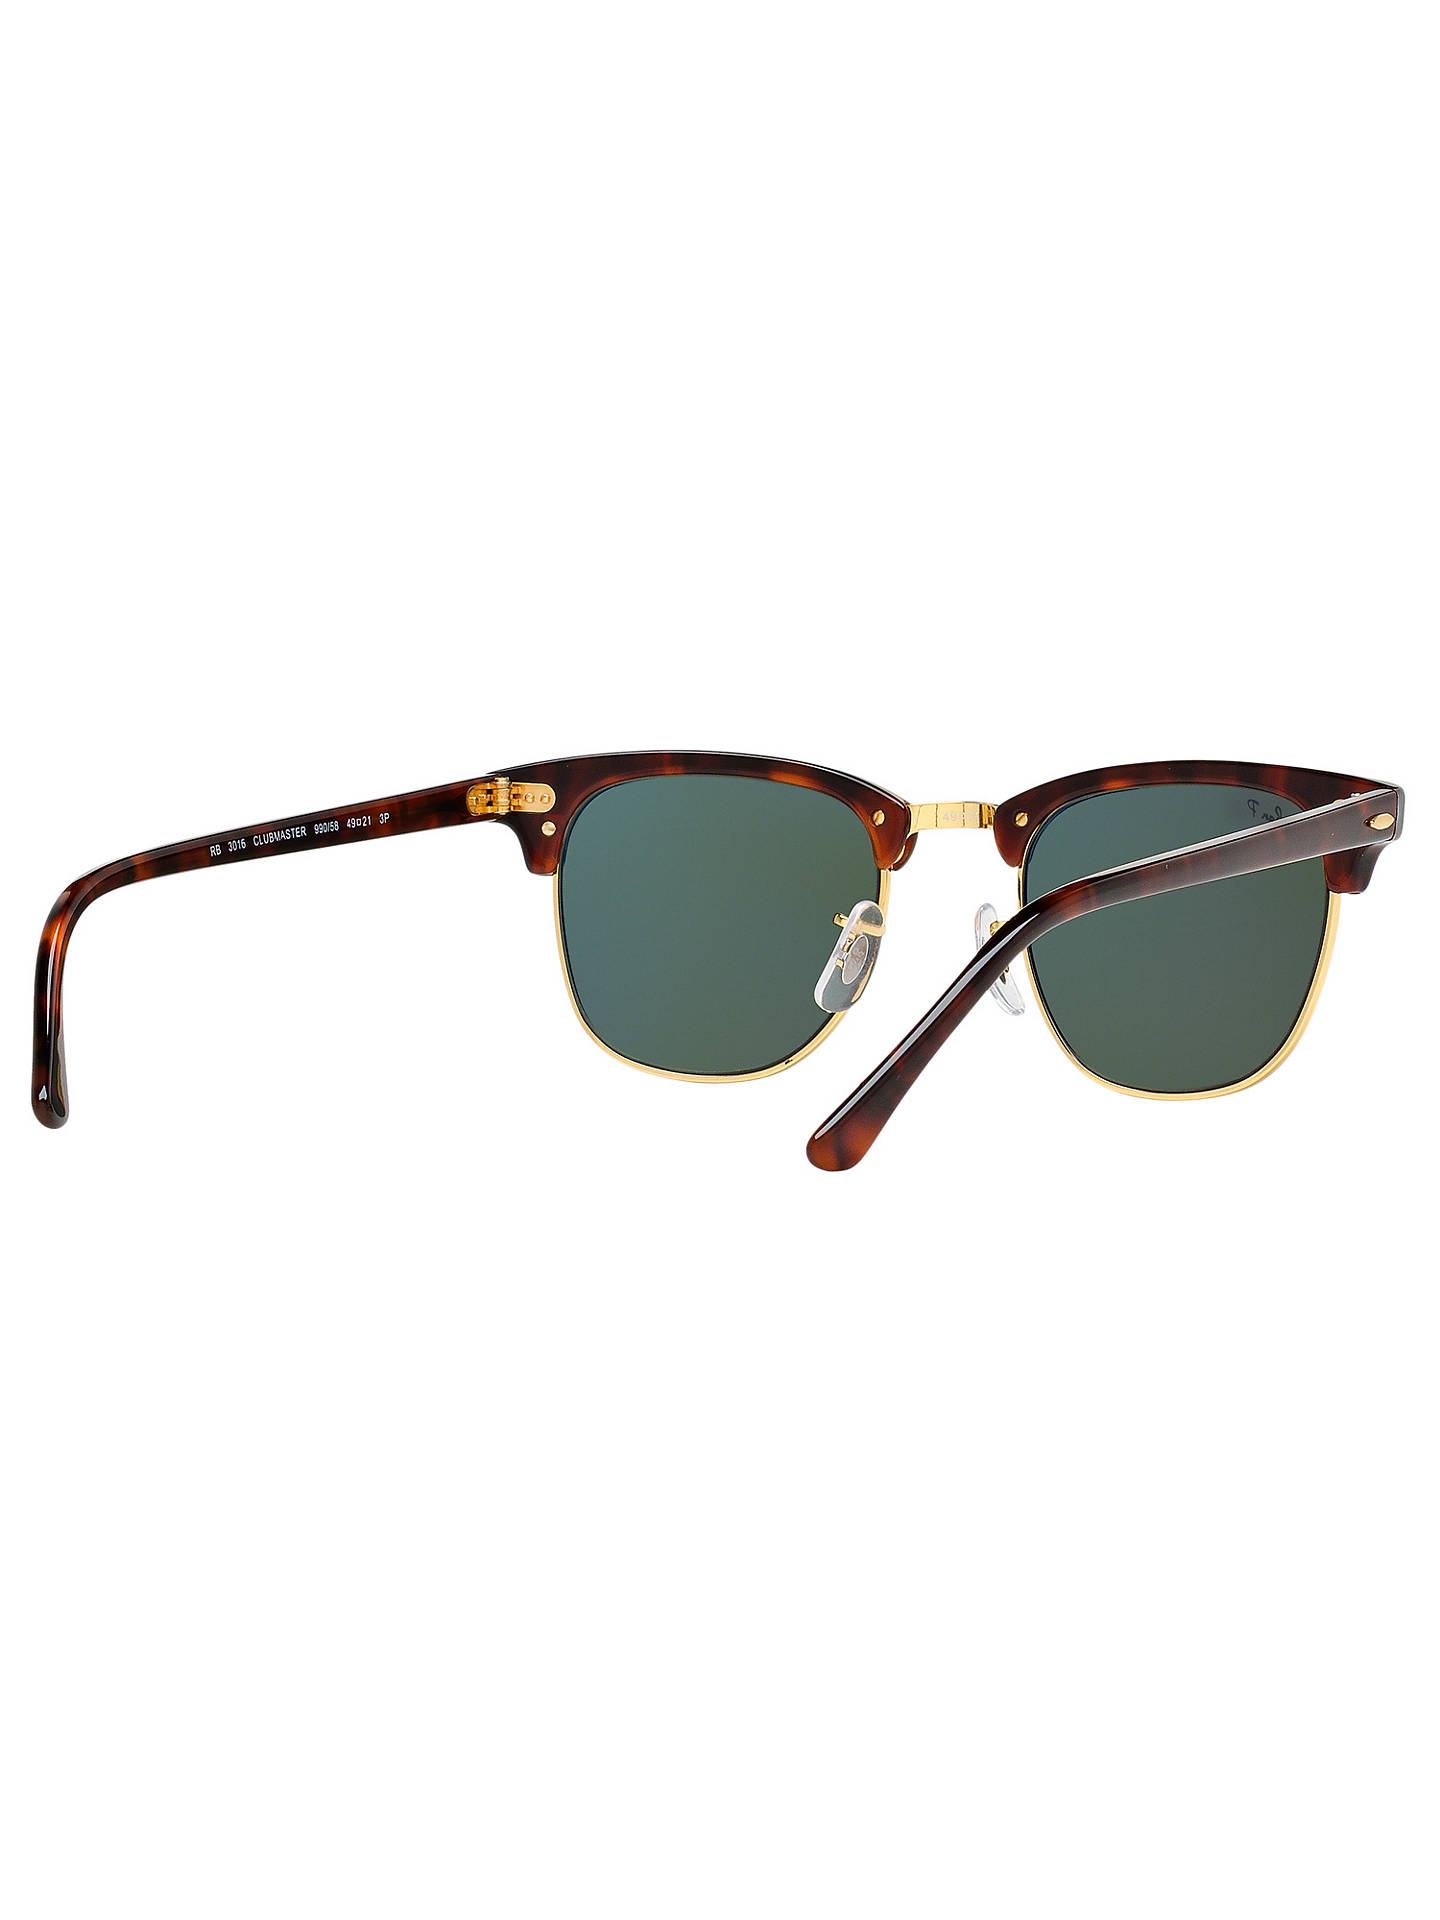 496e3f912 ... Buy Ray-Ban RB3016 Men's Polarised Clubmaster Sunglasses, Tortoise/Dark  Green Online at ...